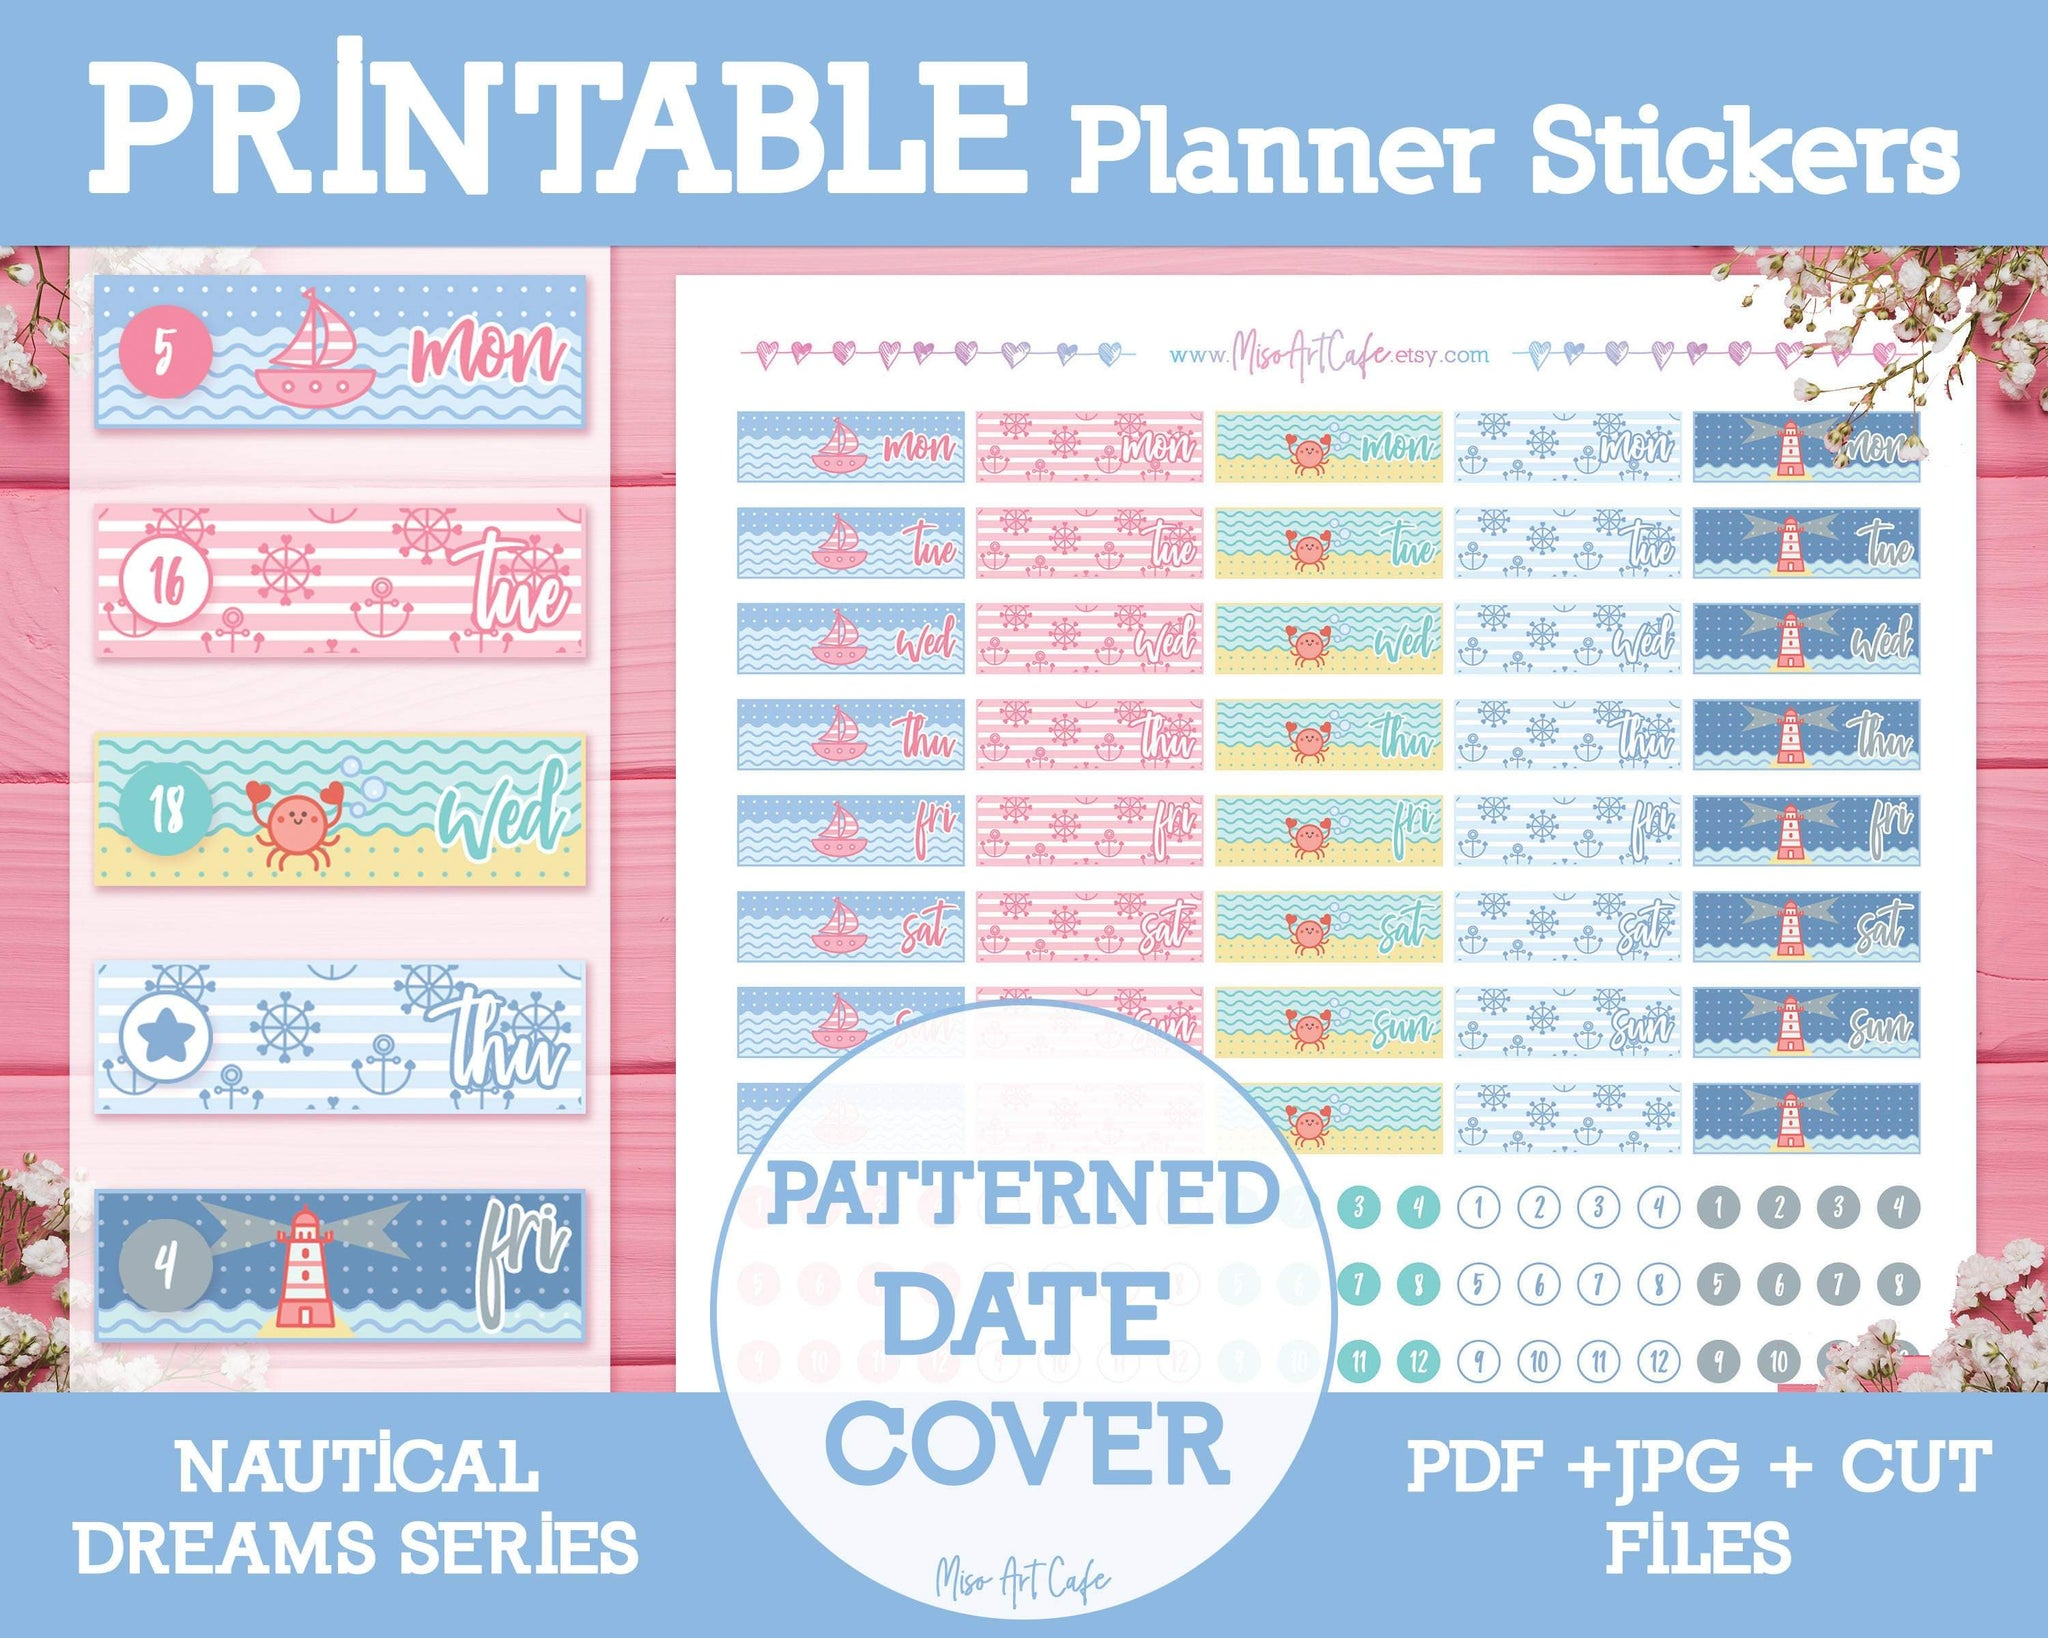 Printable Date Covers - Nautical Dreams Planner Stickers - Miso Art Cafe